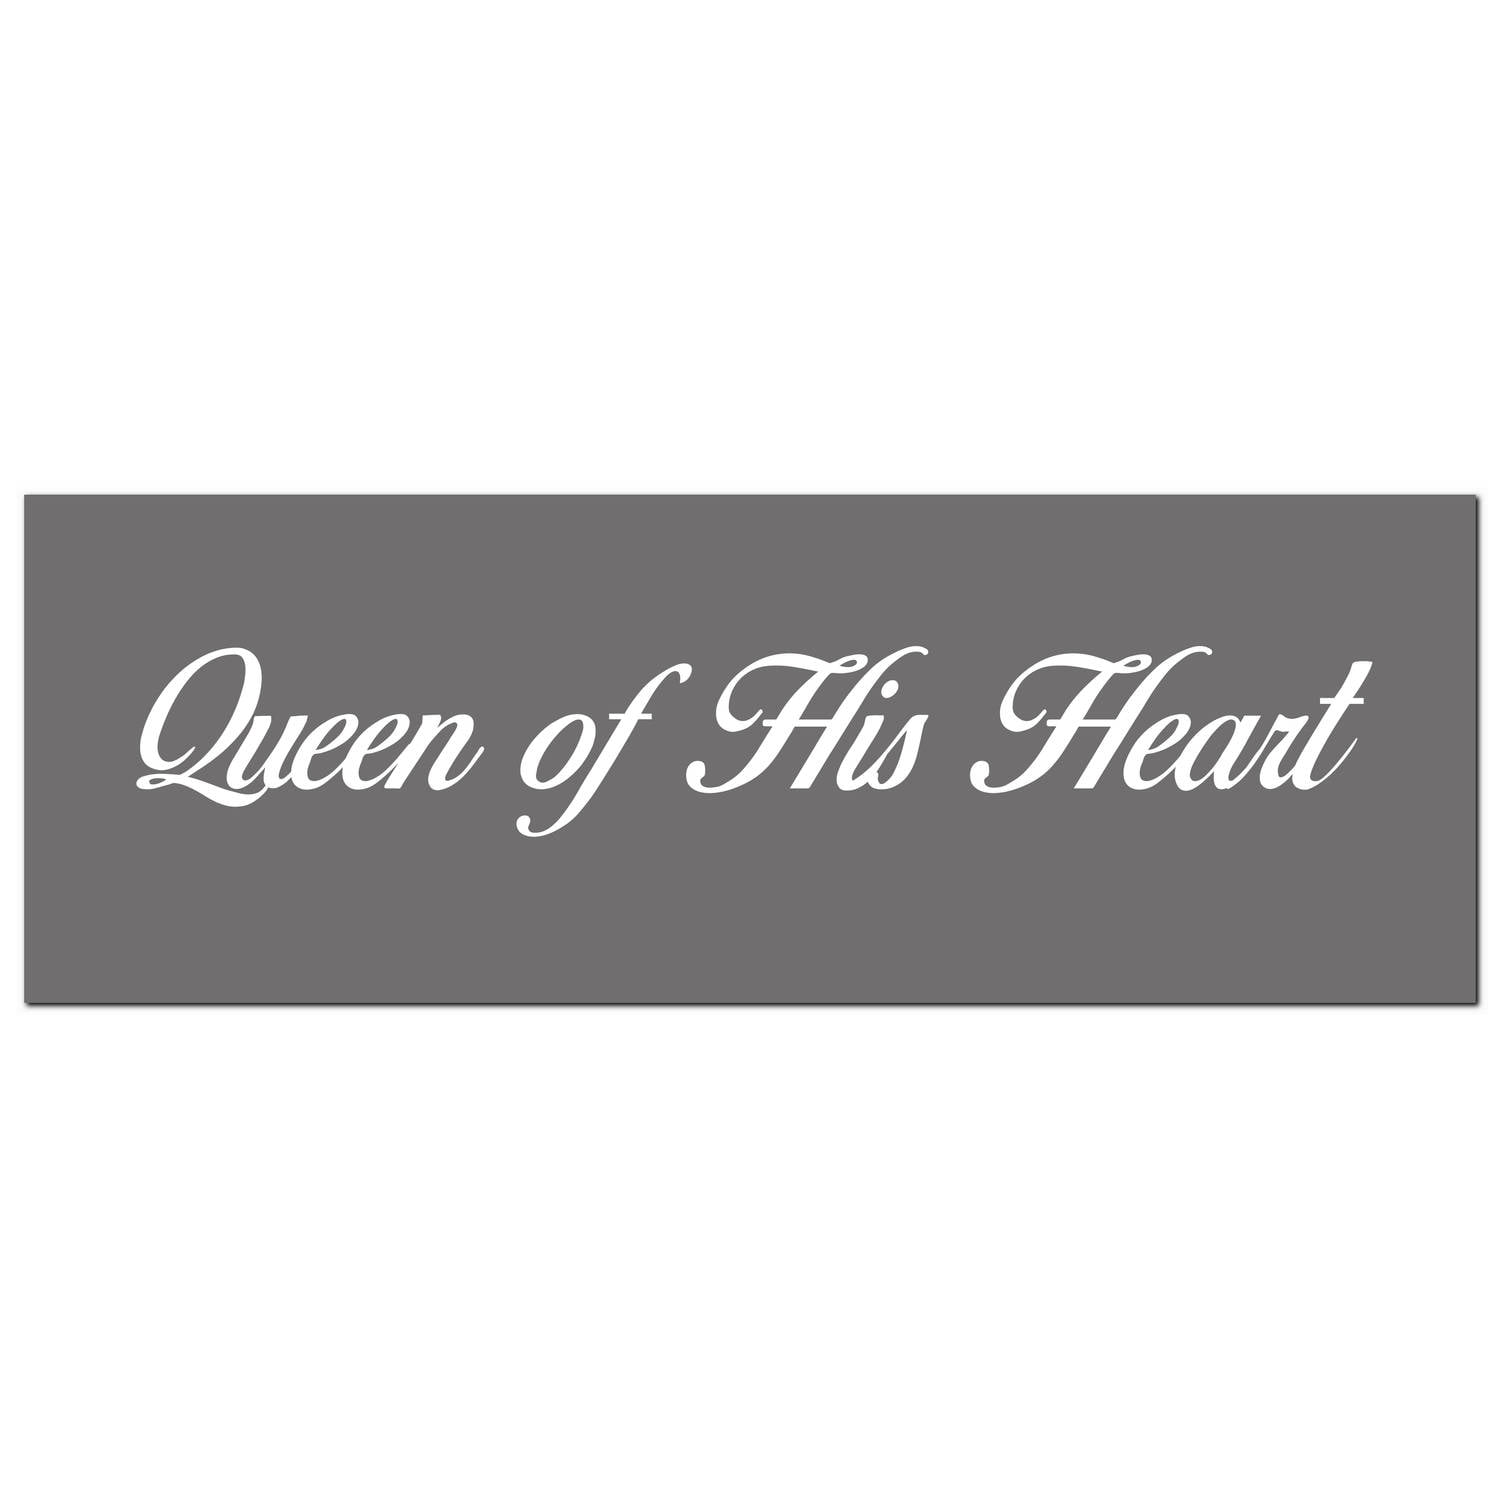 'Queen of His Heart' Silver Plaque